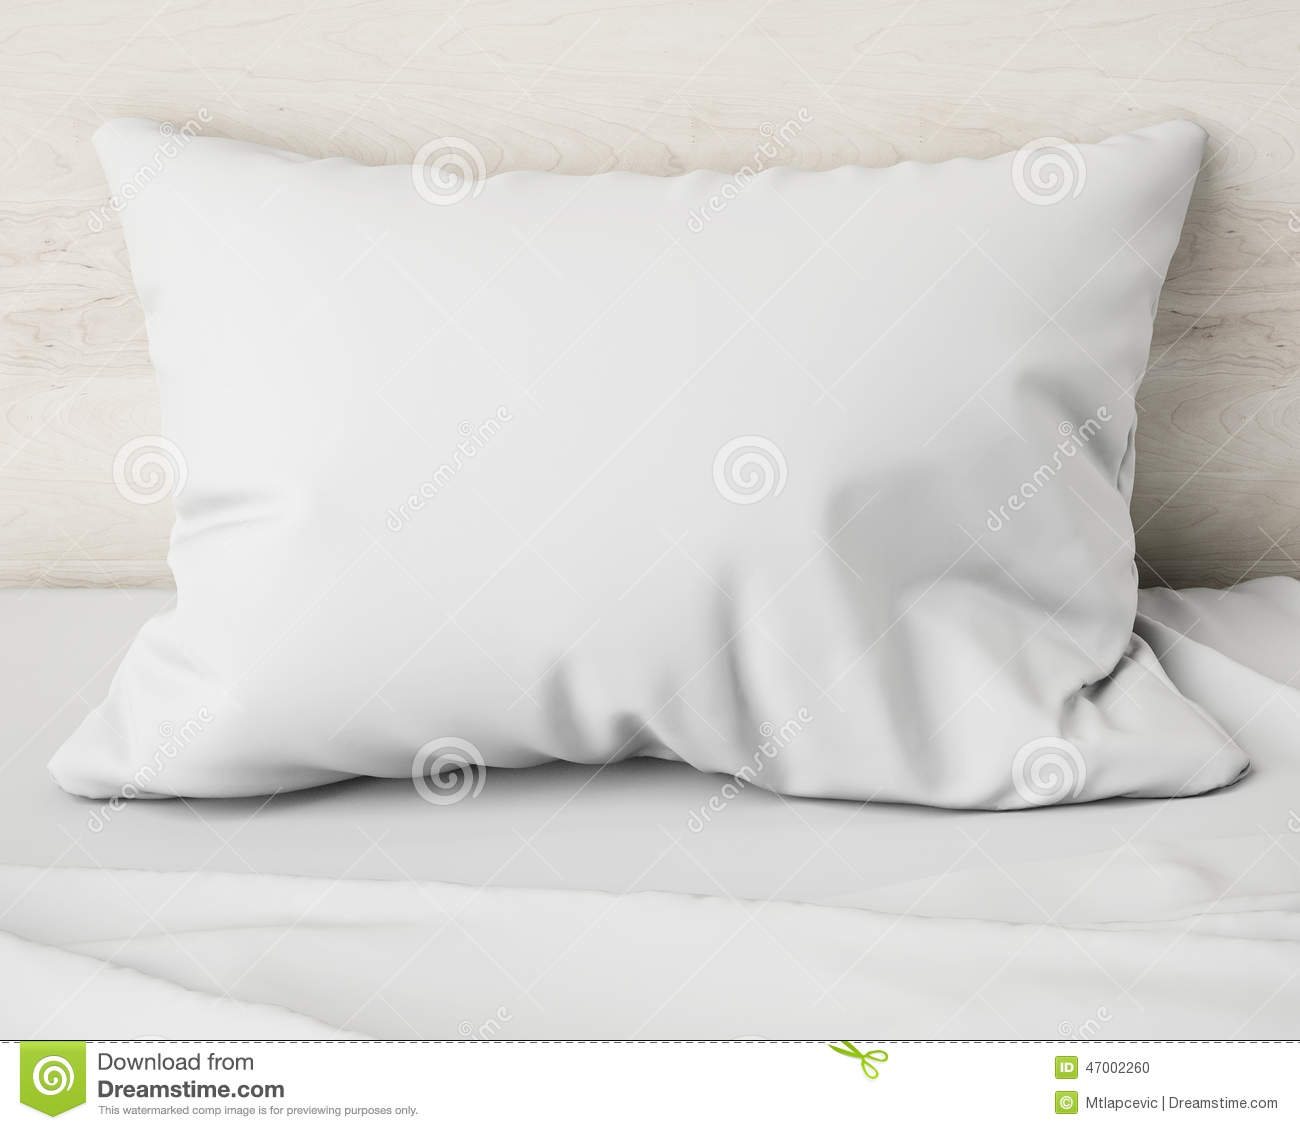 White Pillow On The Bed, Background Stock Illustration - Image: 47002260